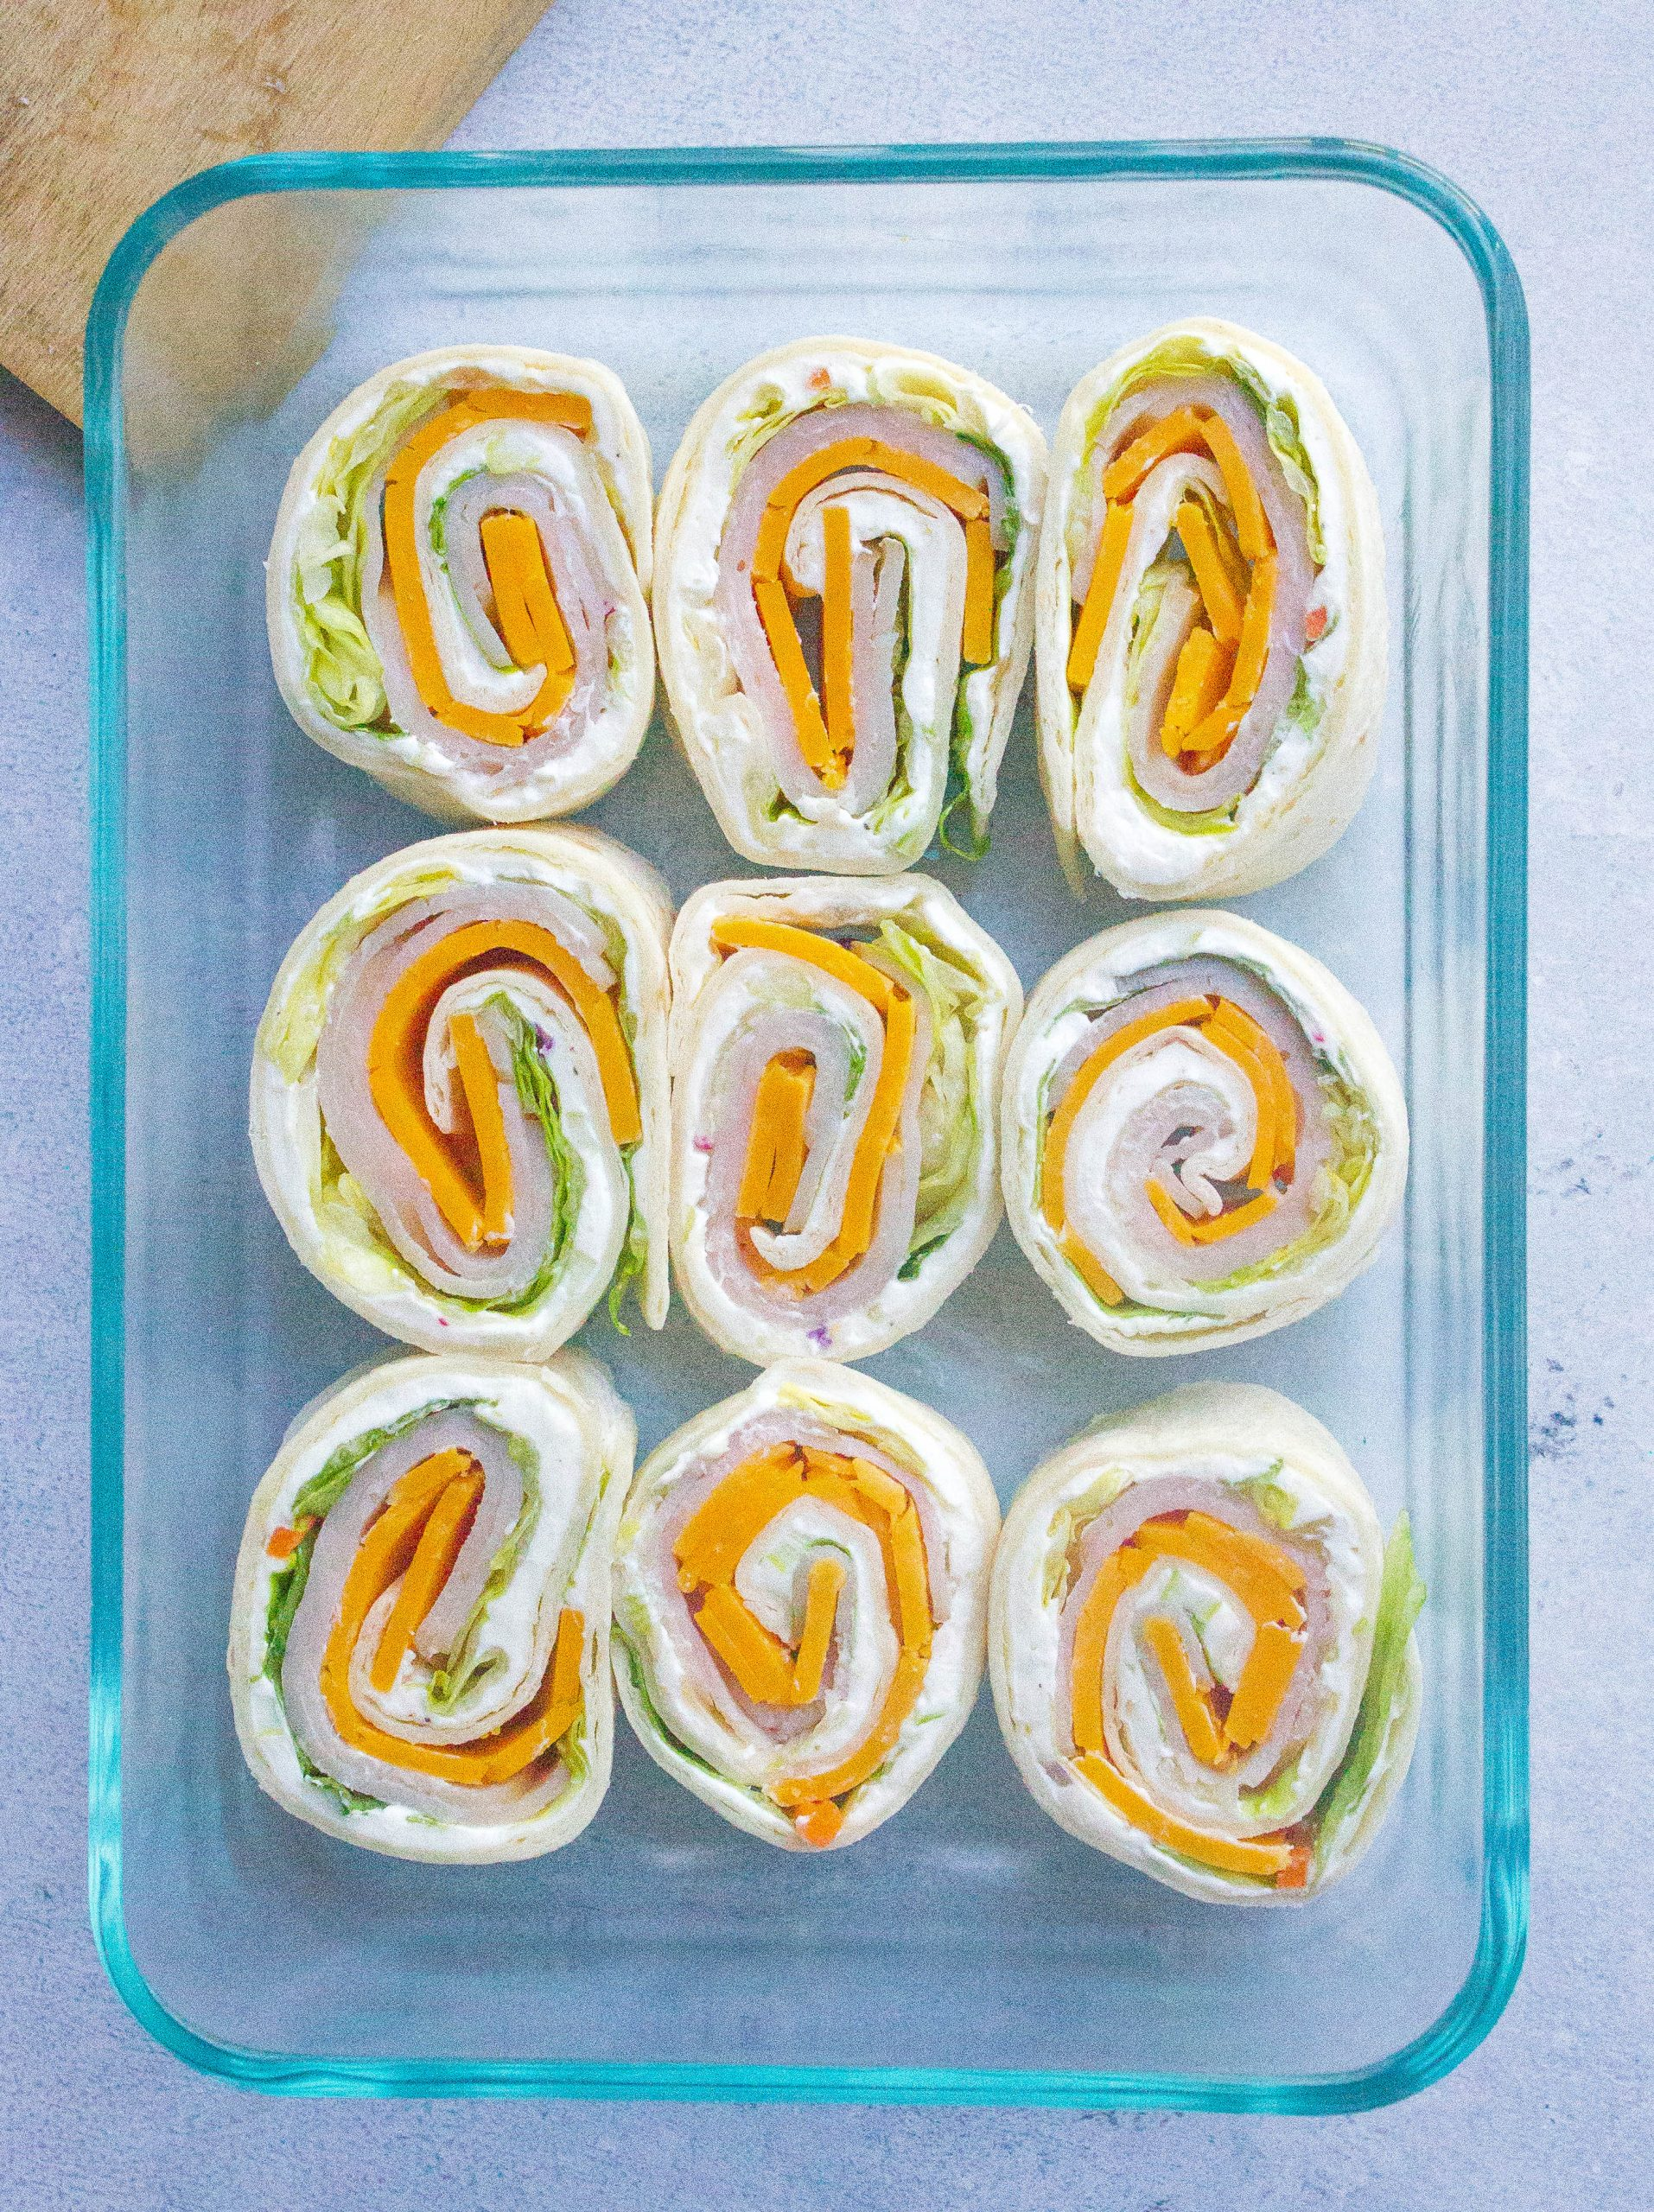 Turkey Cheddar Lunch Roll Ups in container